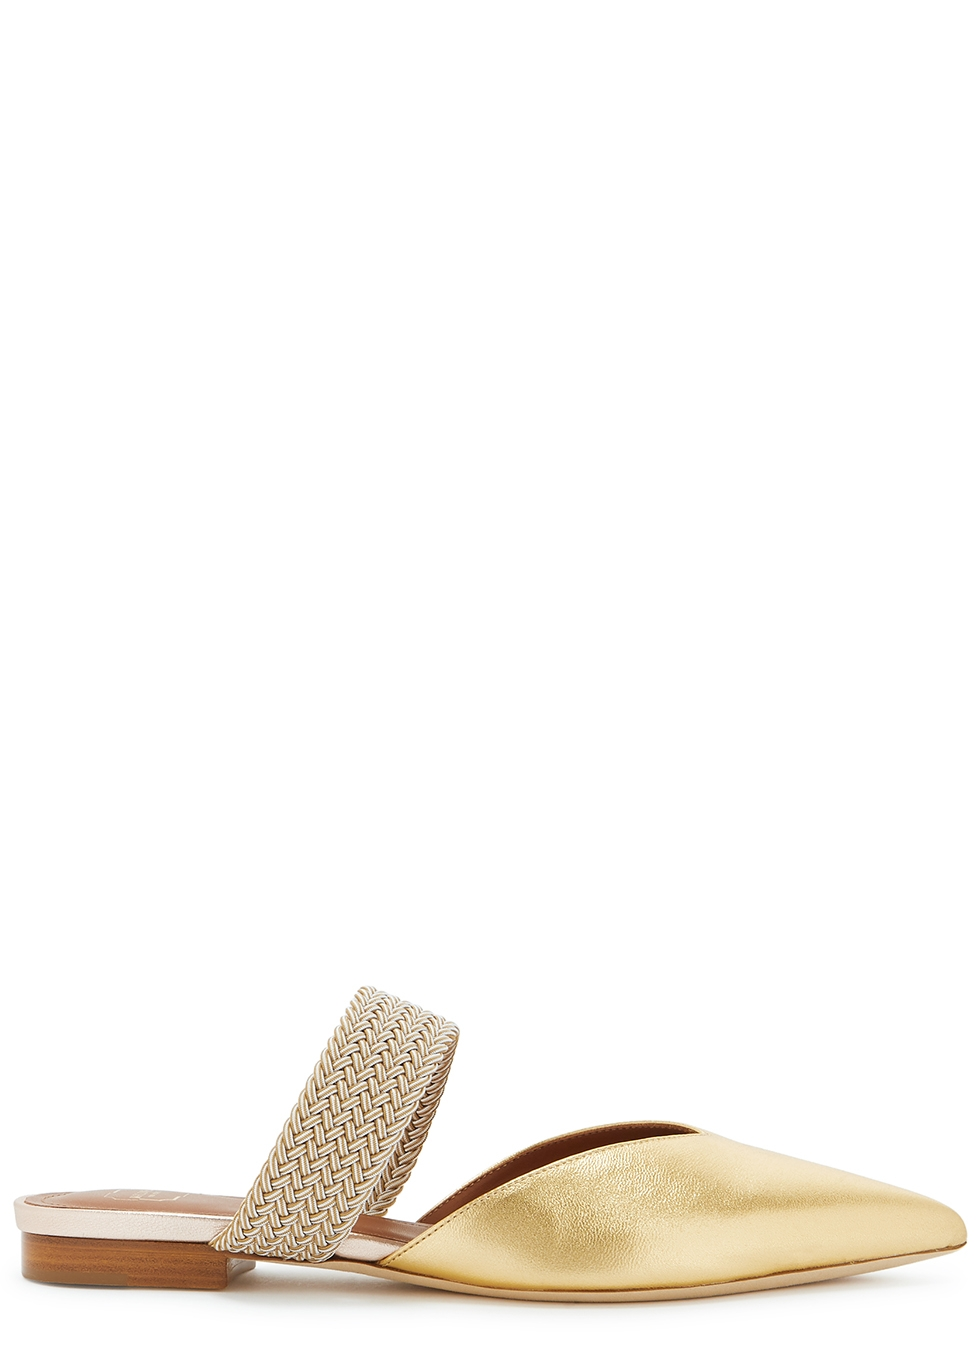 Maisie 10 gold leather mules